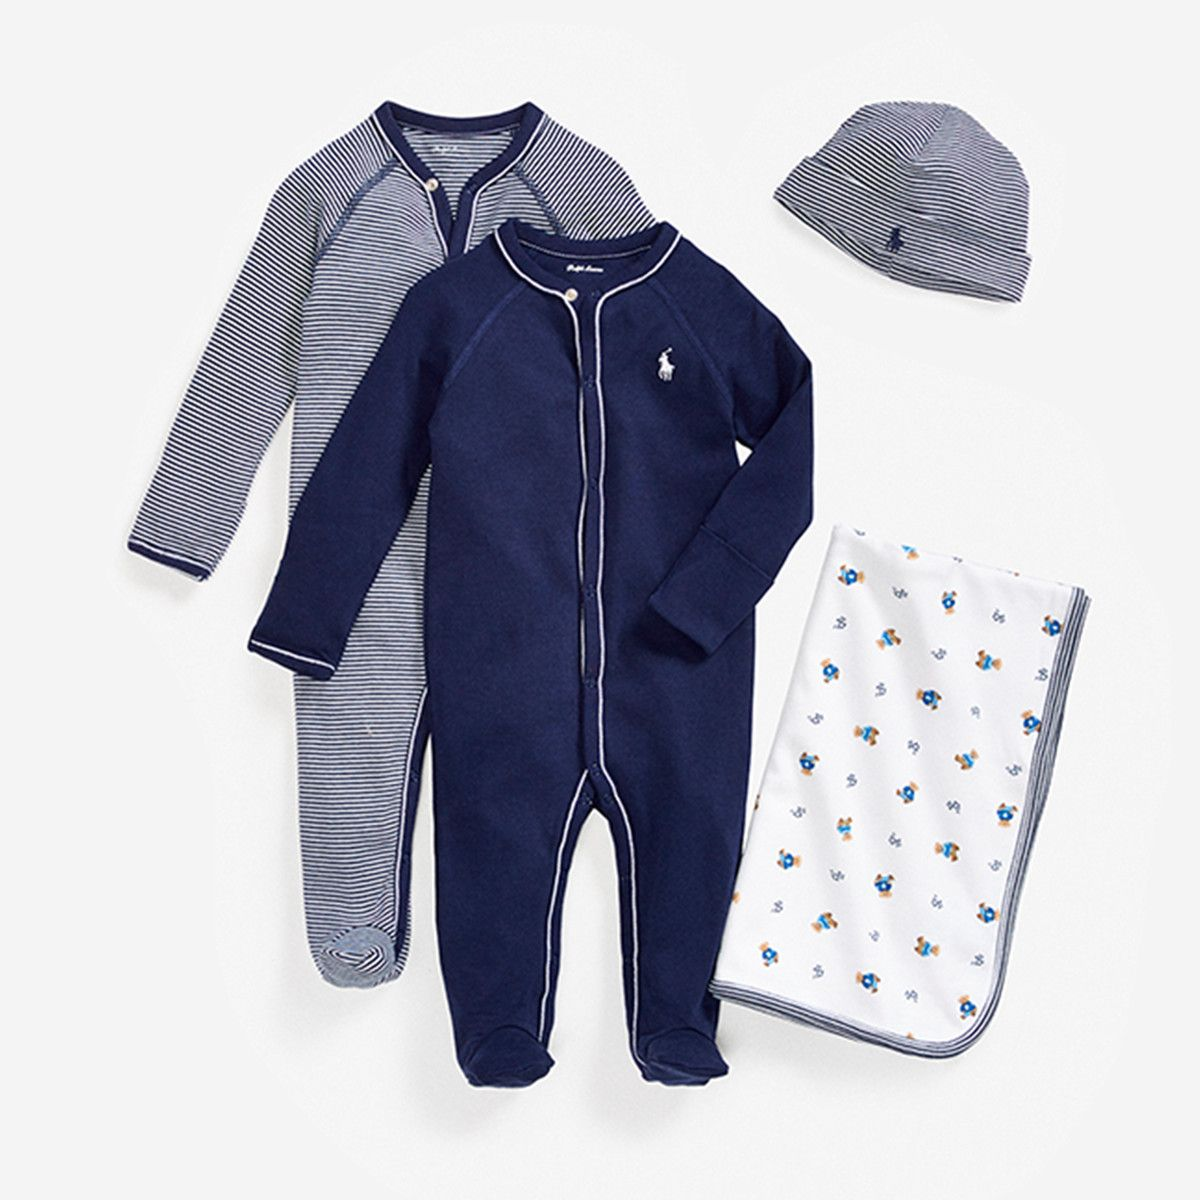 Baby Sets & Gifts